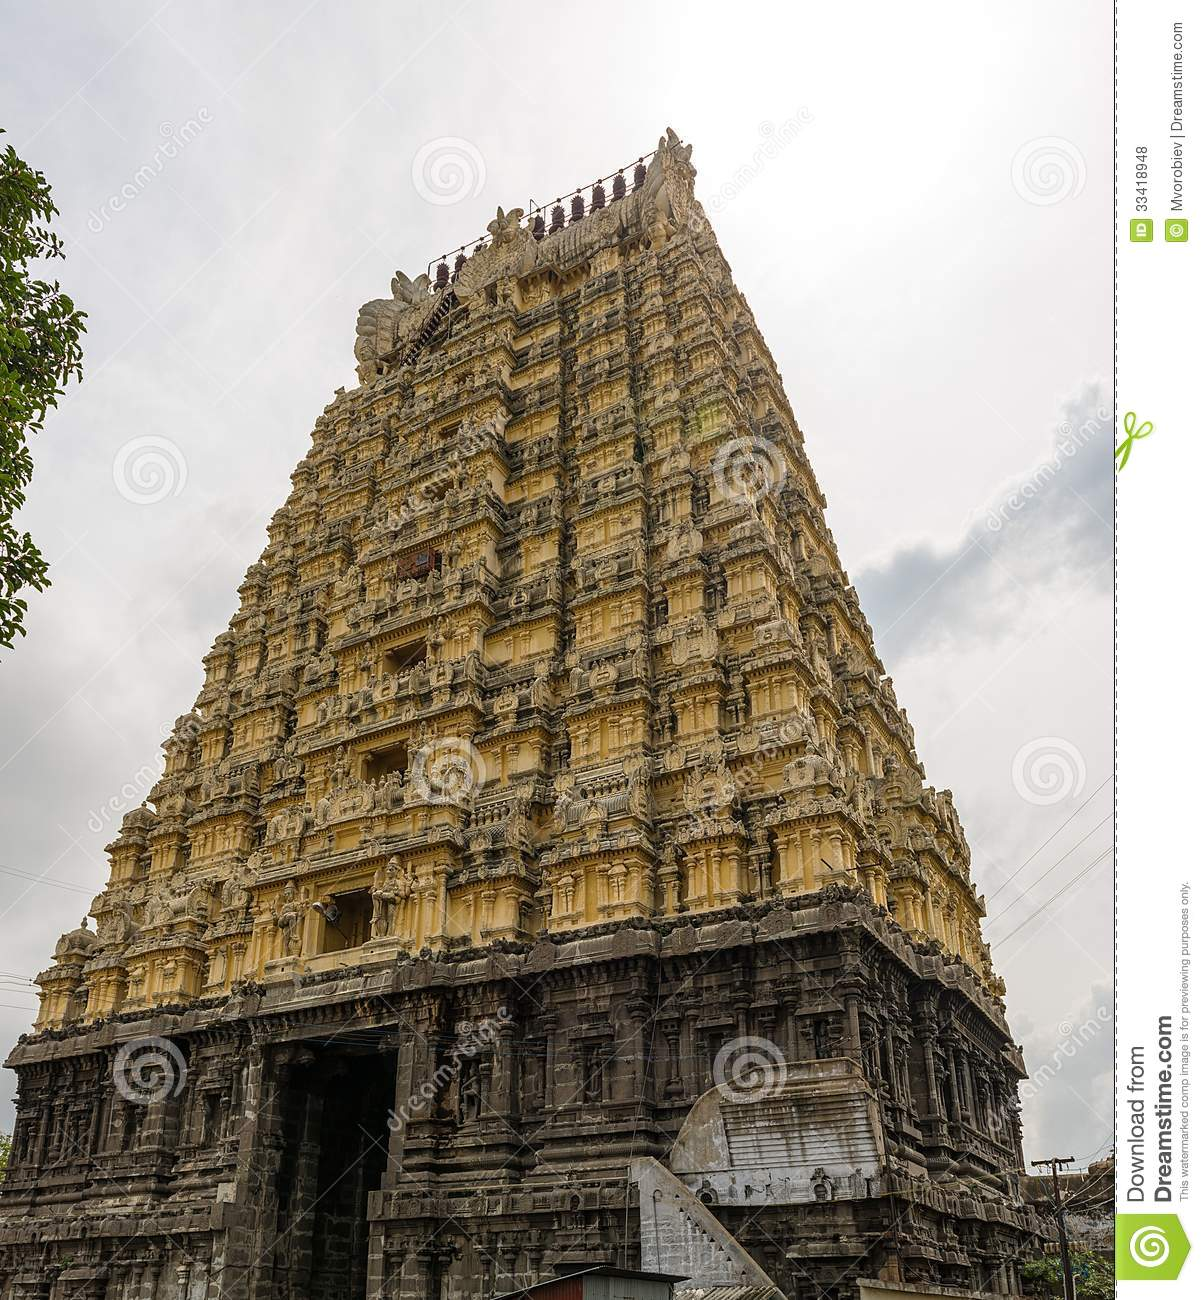 Kanchipuram India  city pictures gallery : India, kanchipuram, Ekambareswarar temple. See my other works in ...